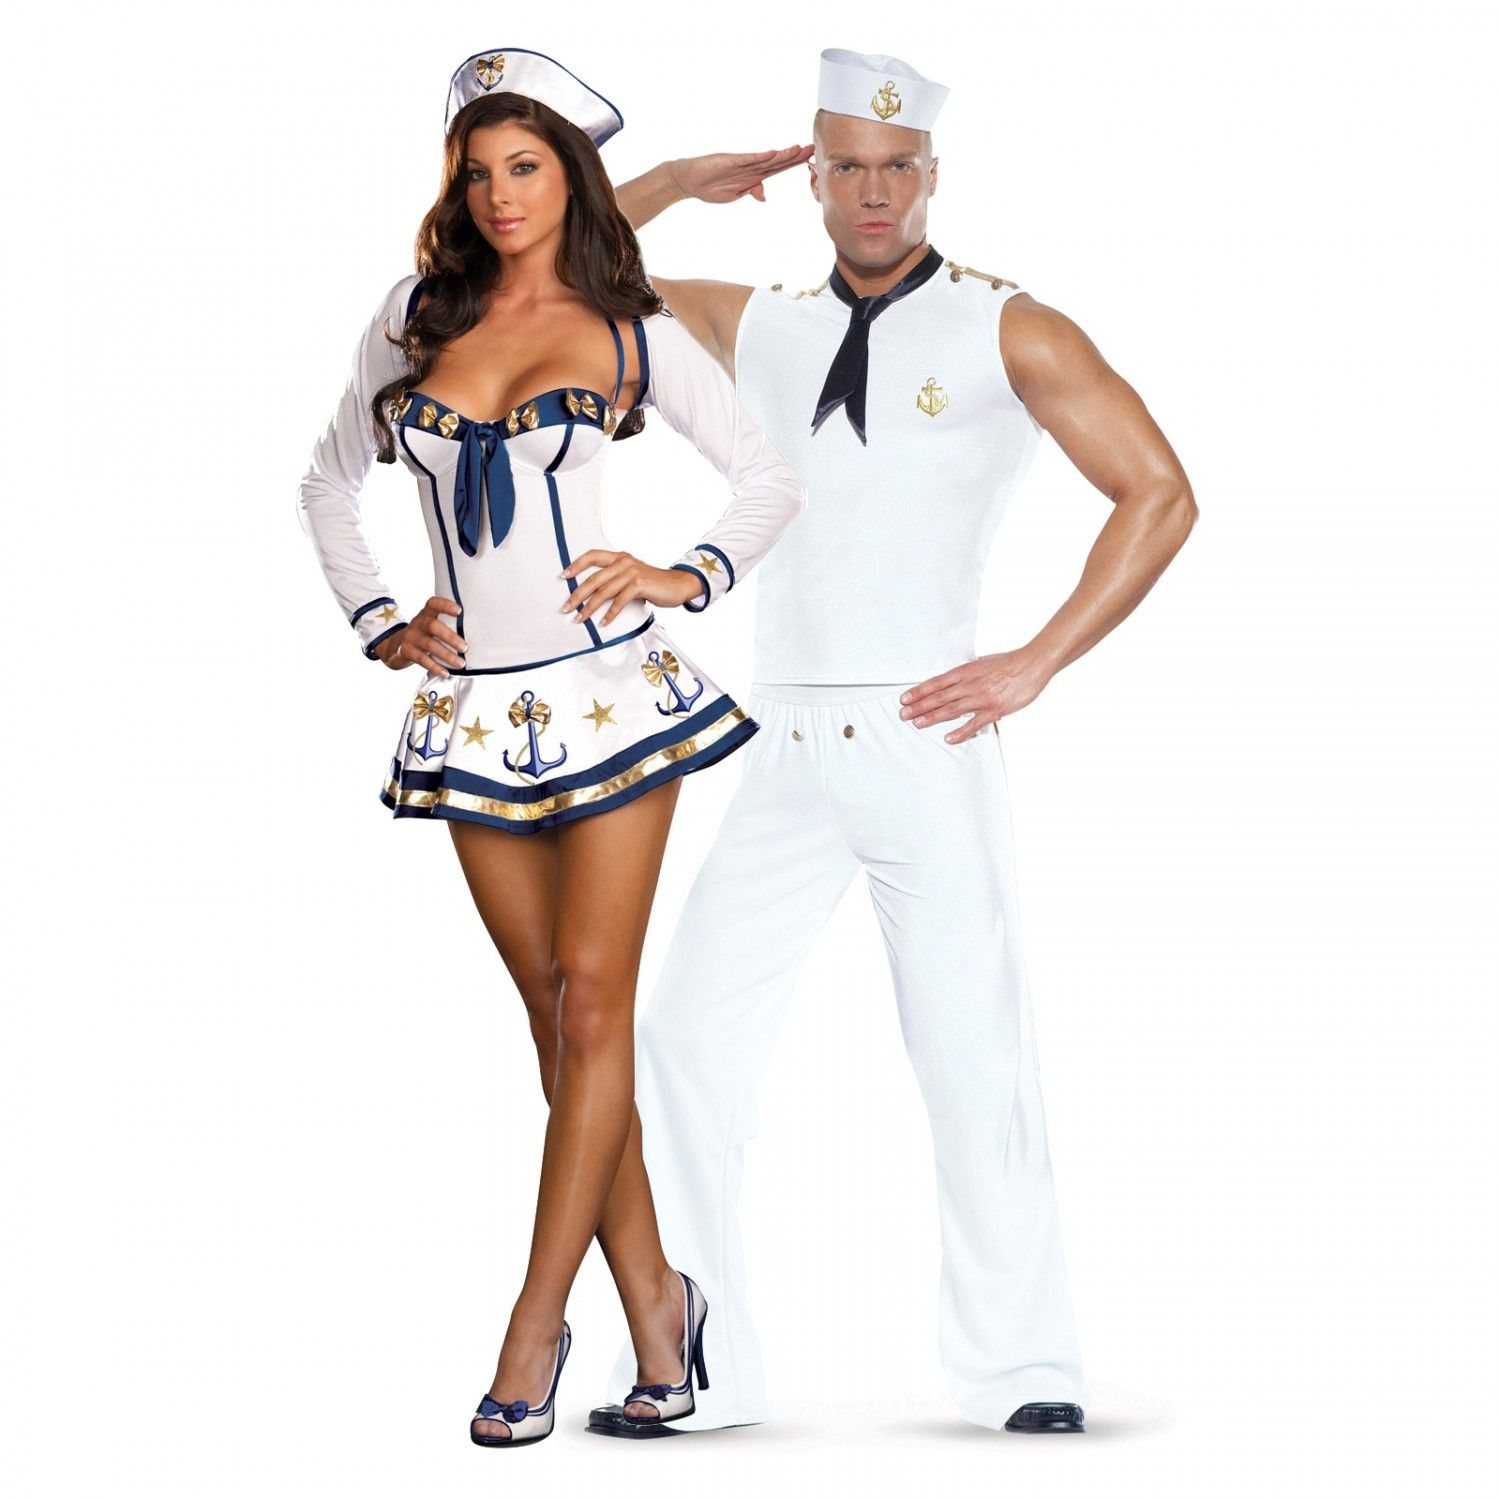 sailor and makin waves sailor sexy couples costume halloween costumes 2013 - Sailors Halloween Costumes